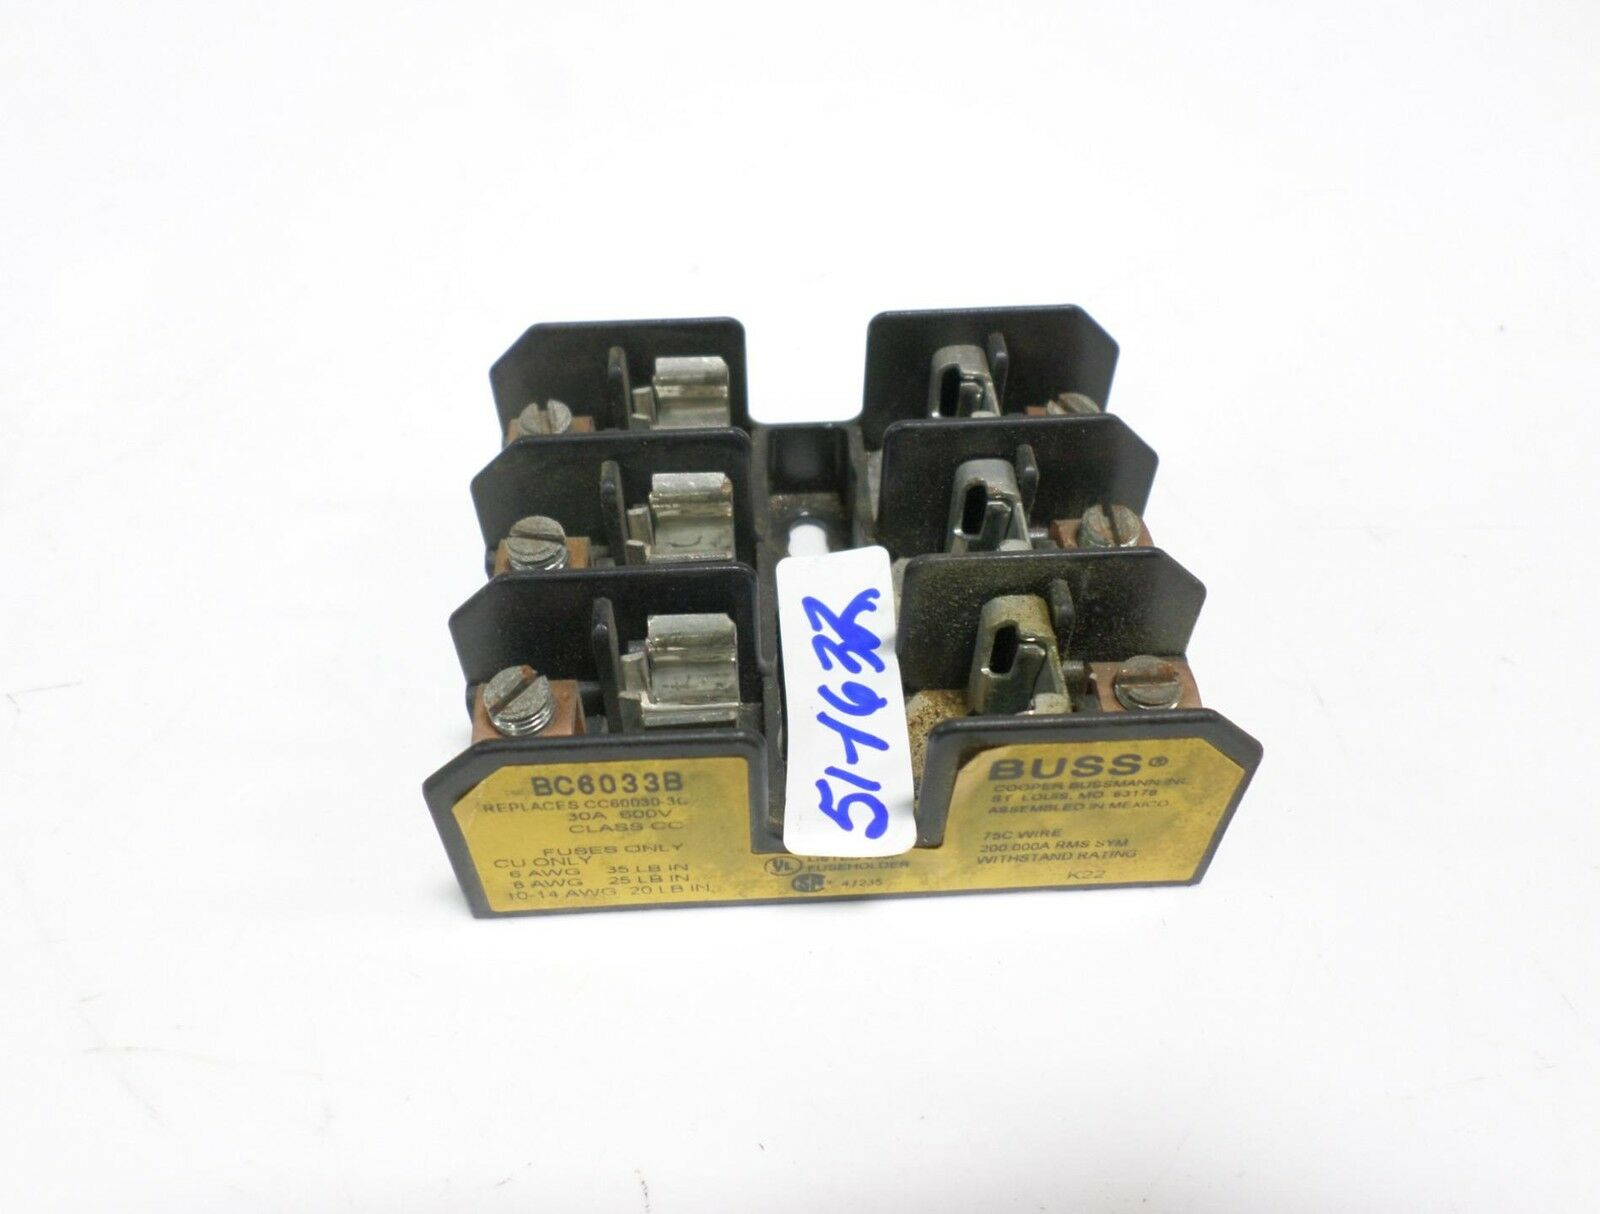 Rk5 Fuse Holder In Box Cooper Bussmann 30a 600v 3p Block Bc6033b 2995 Picclick 1 Of 1only Available See More